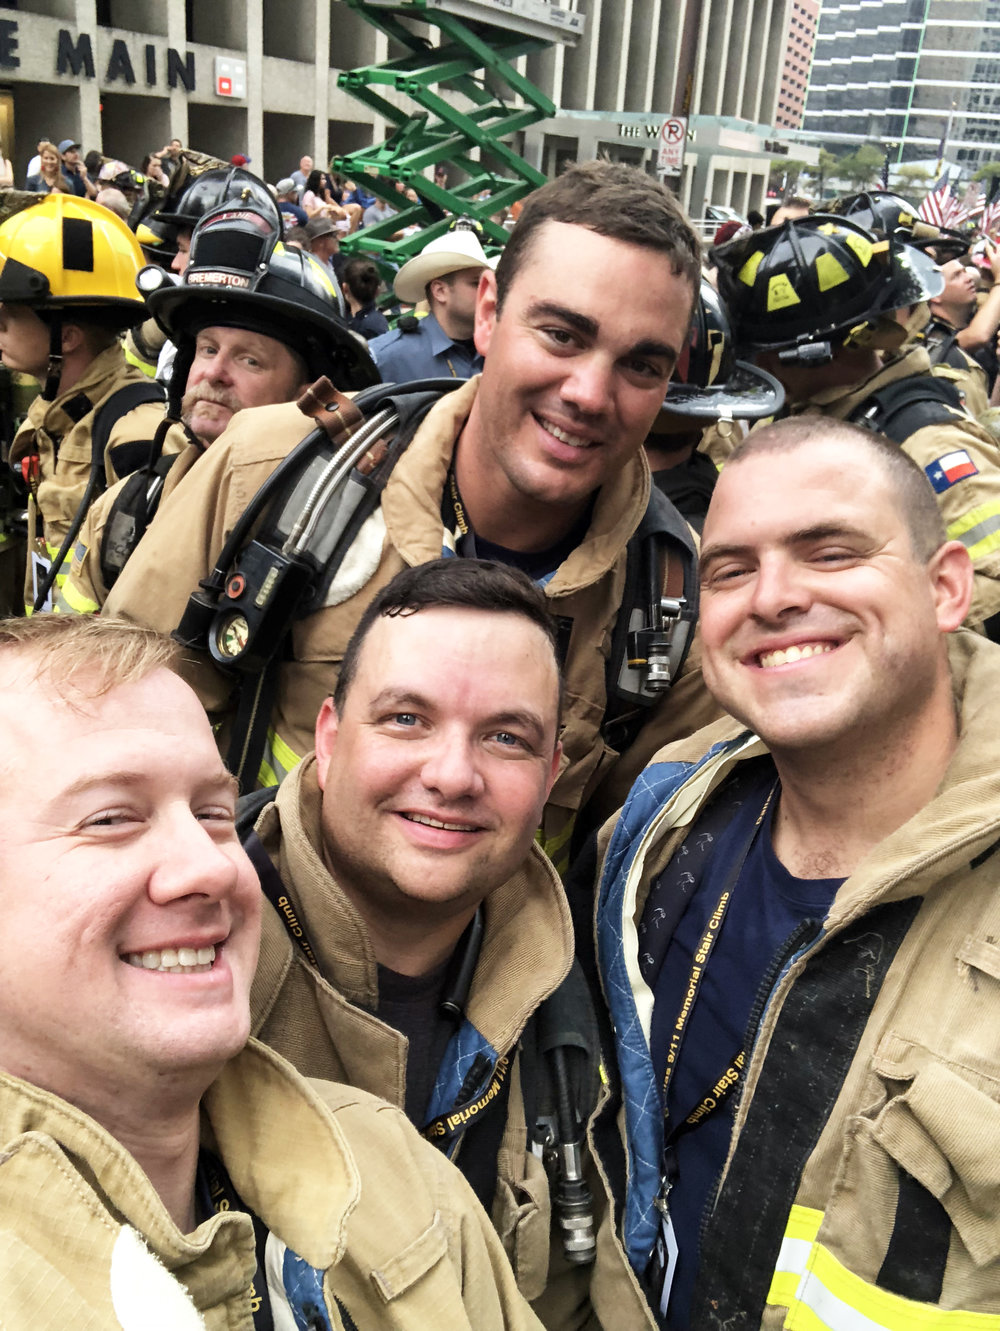 Members of Lucas Fire Rescue Department after they completed the Dallas Stair Climb. (Photo provided by Lucas FRD.)